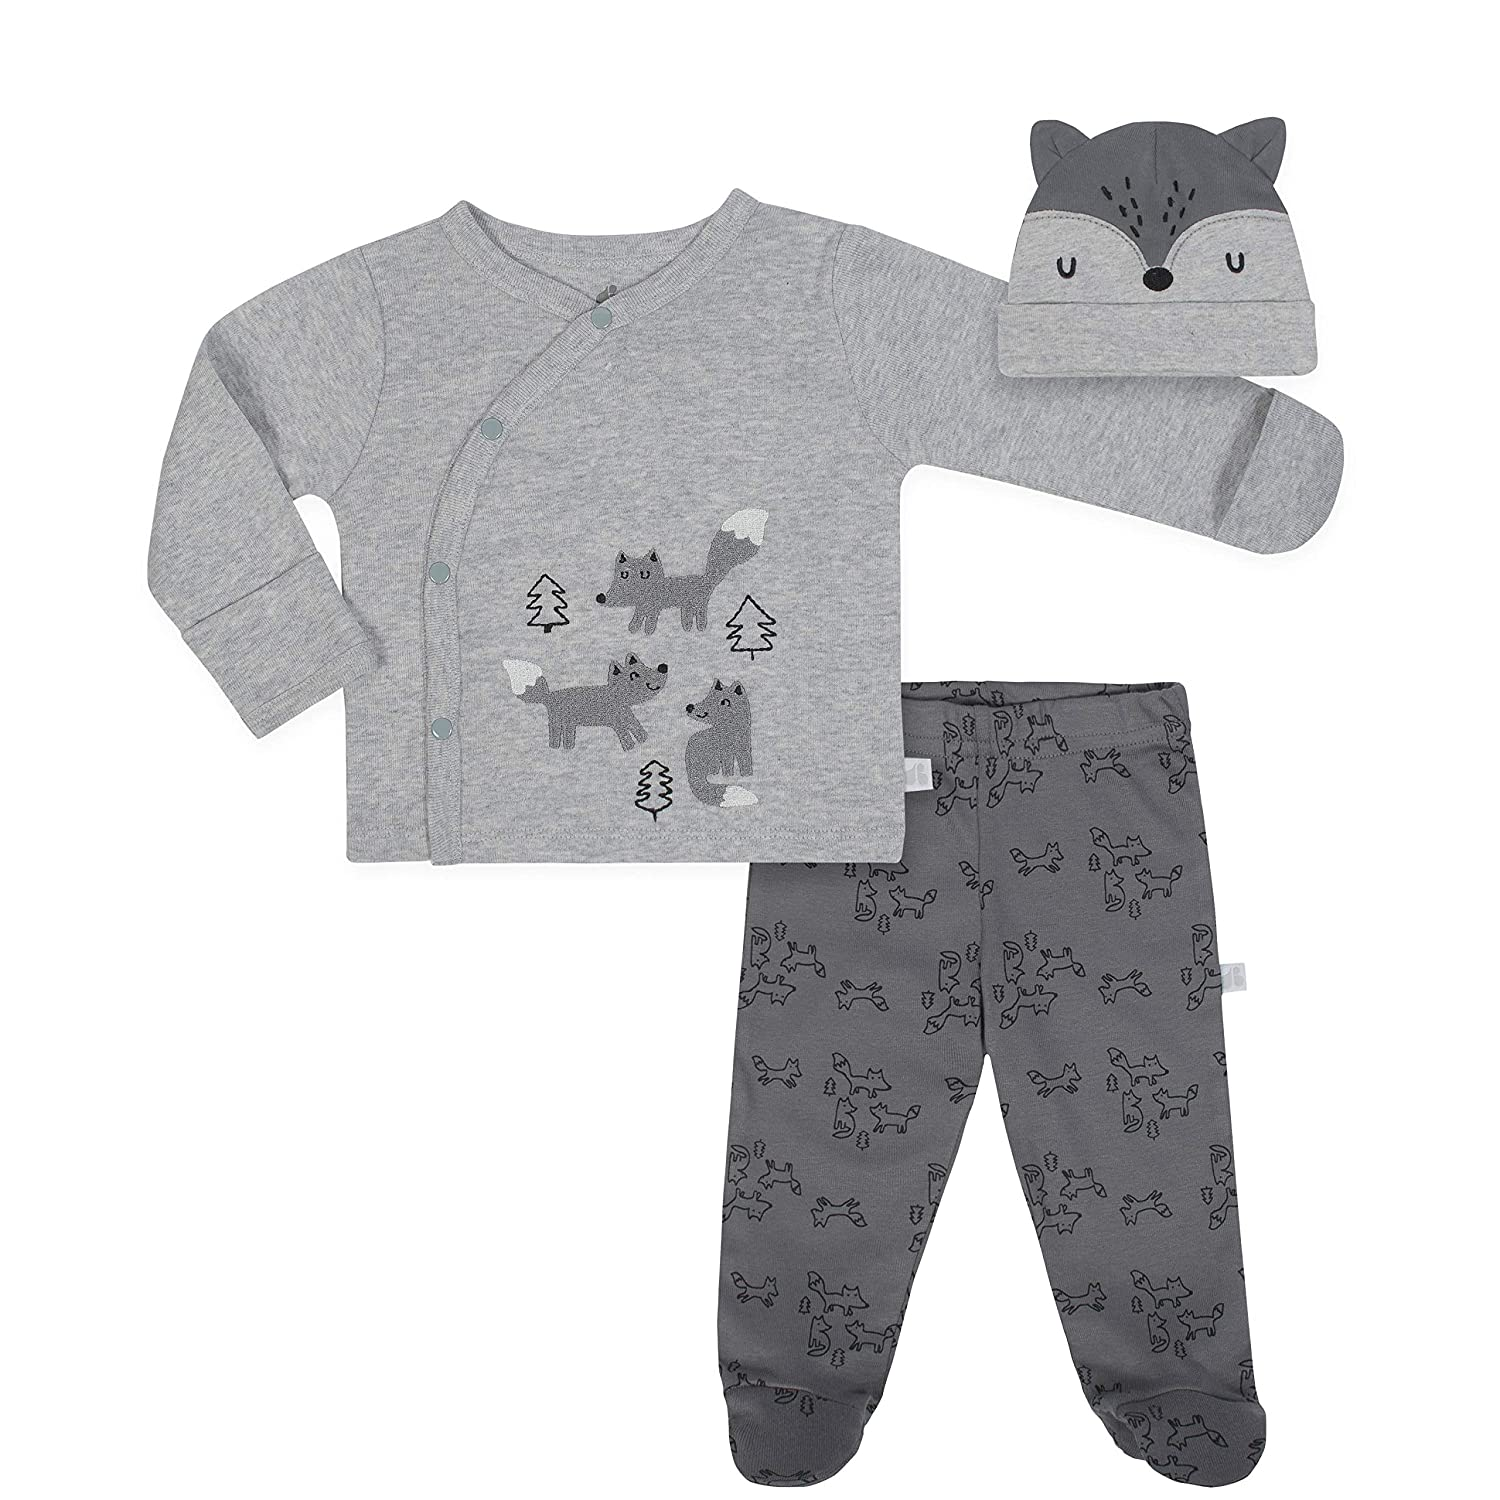 JUST BORN Baby Boys' 3-Piece Organic Take Me Home Outfit